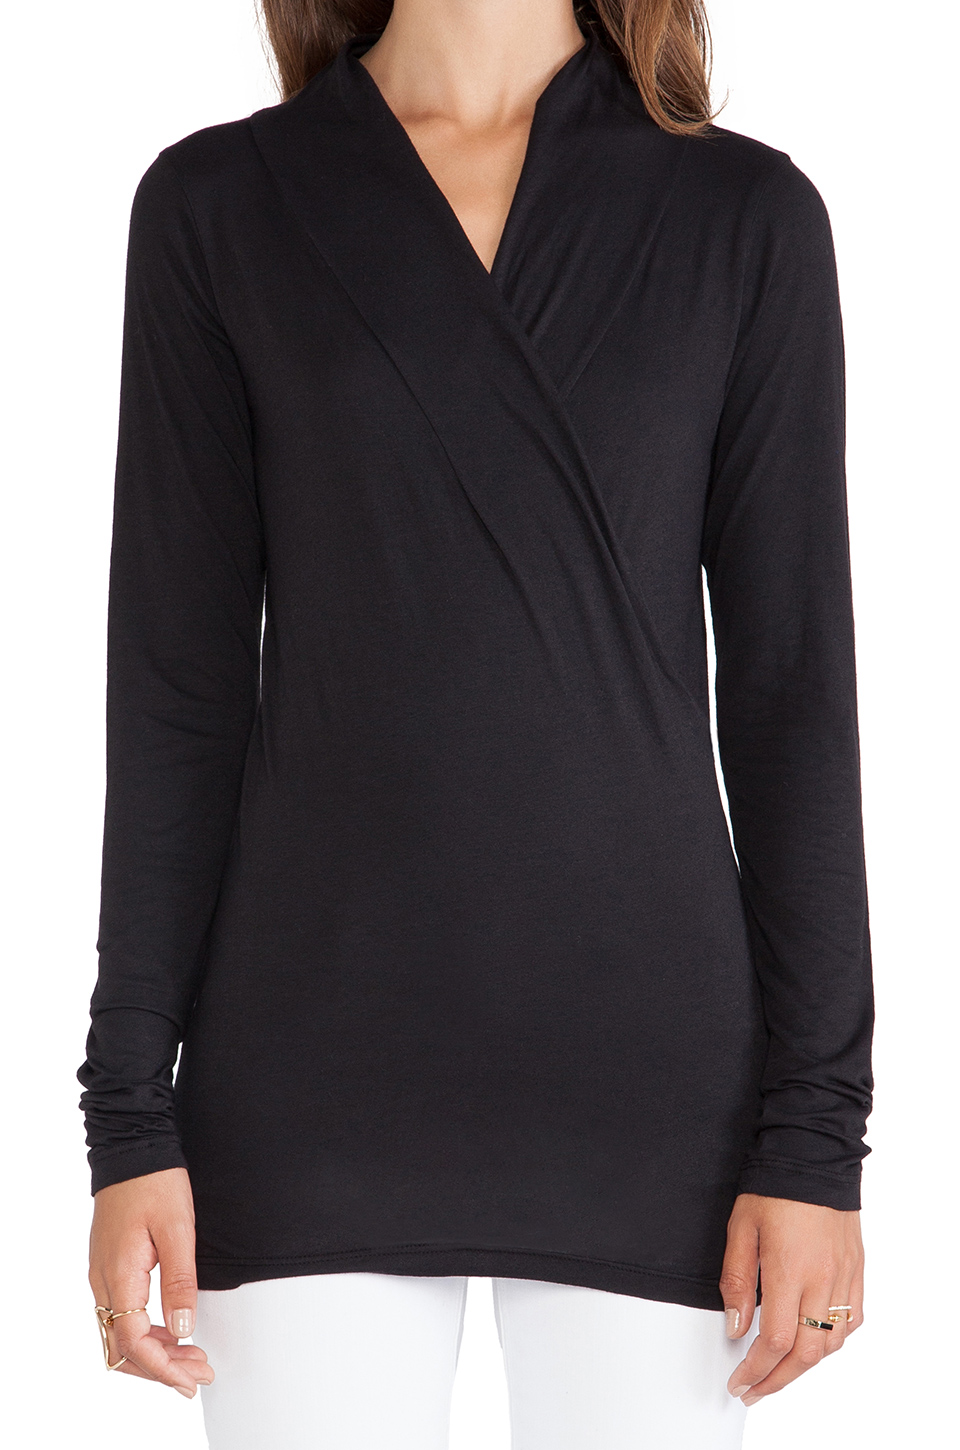 Velvet by Graham & Spencer Gauzy Whisper Classics Meri Wrap Top in Black